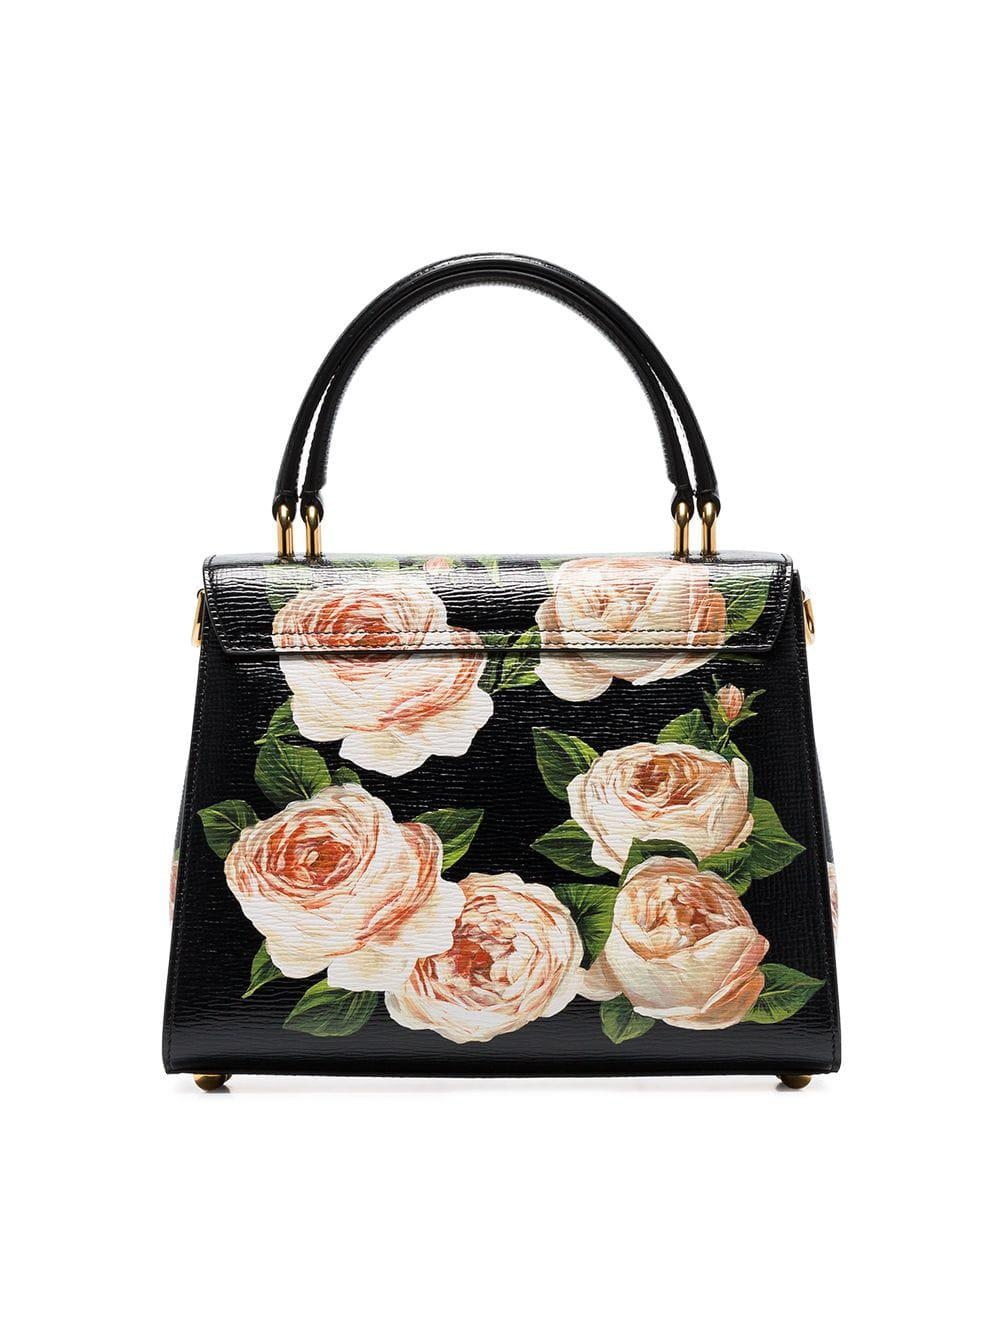 Dolce   Gabbana - Black Welcome Rose Print Leather Shoulder Bag - Lyst.  View fullscreen 26c22fb27b91a